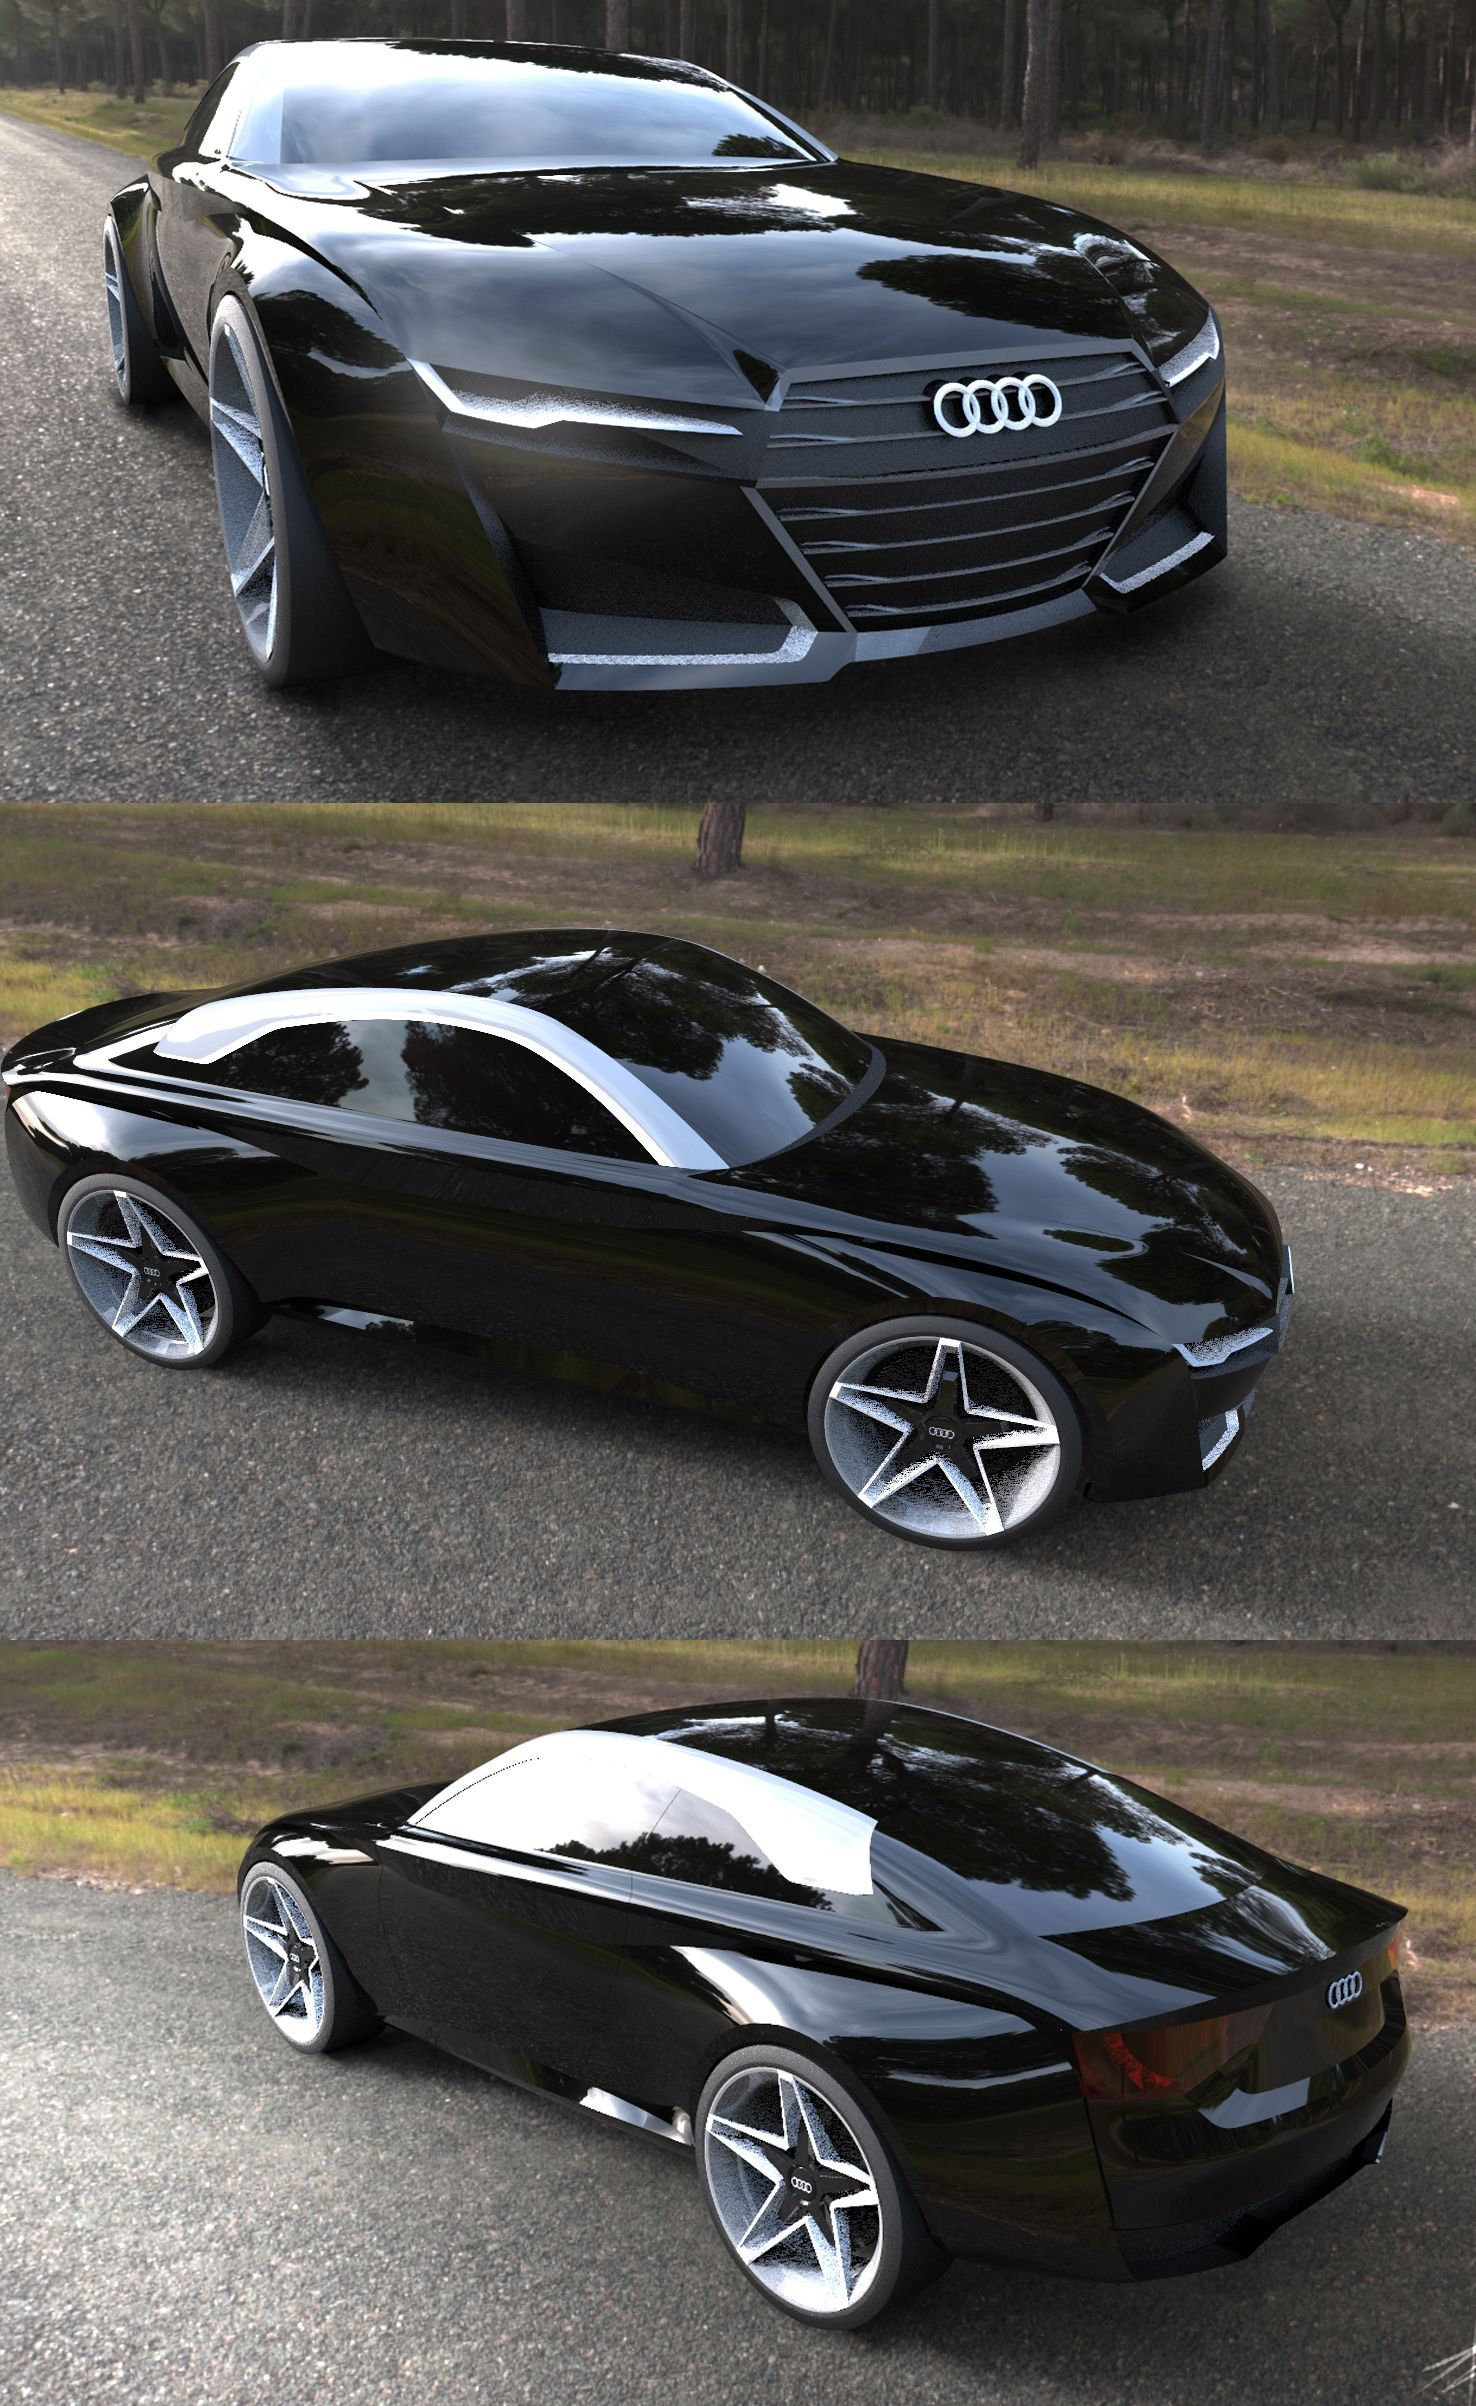 2016 Audi A5 Concept By Tony Chen By Tonywck On Deviantart Super Cars Audi Cars Concept Cars